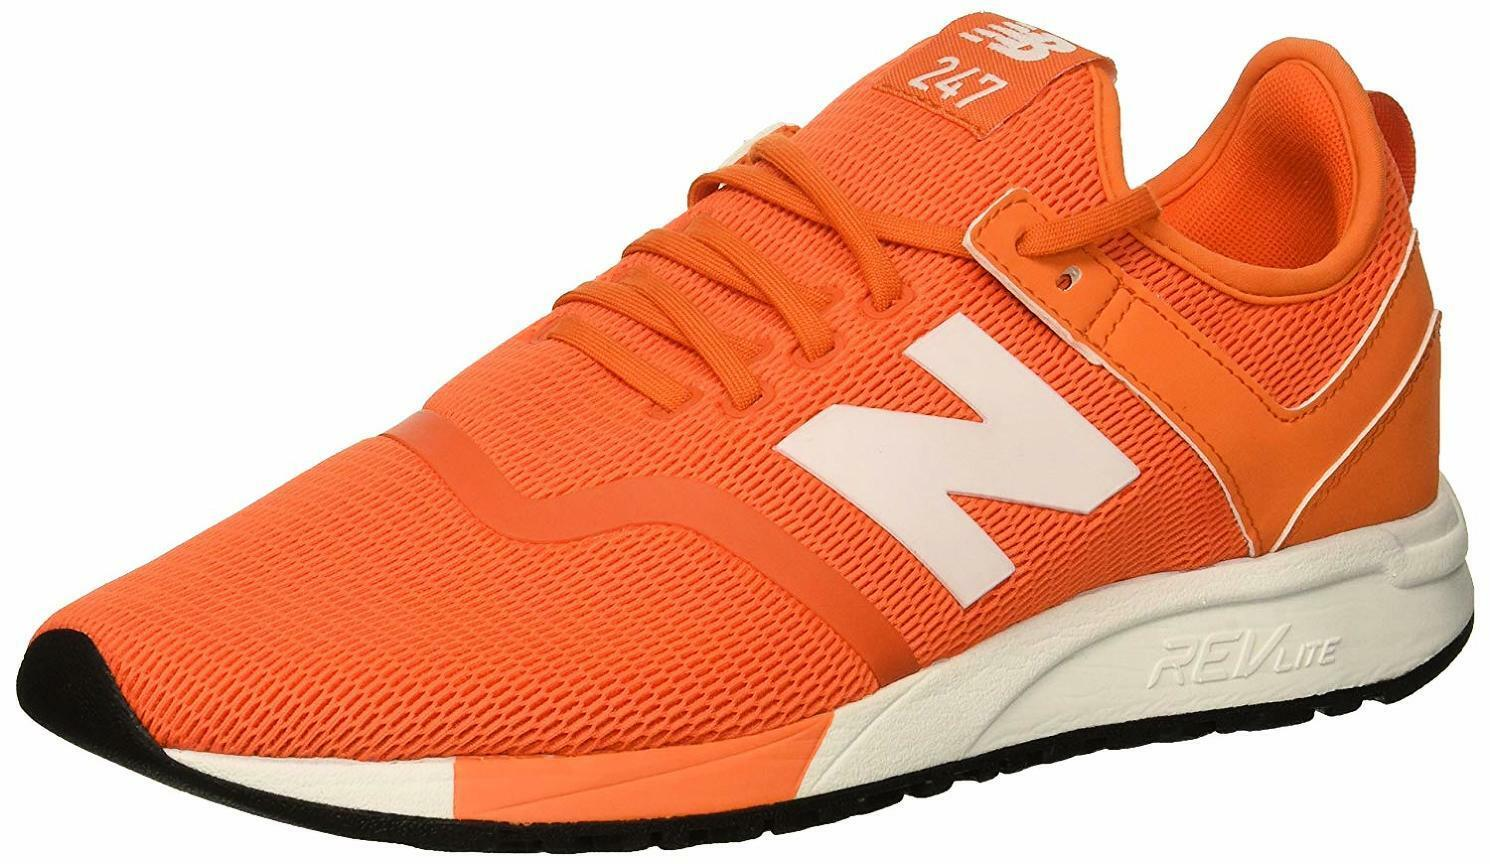 New Balance Men's 247v1 Sneaker - Choose SZ color